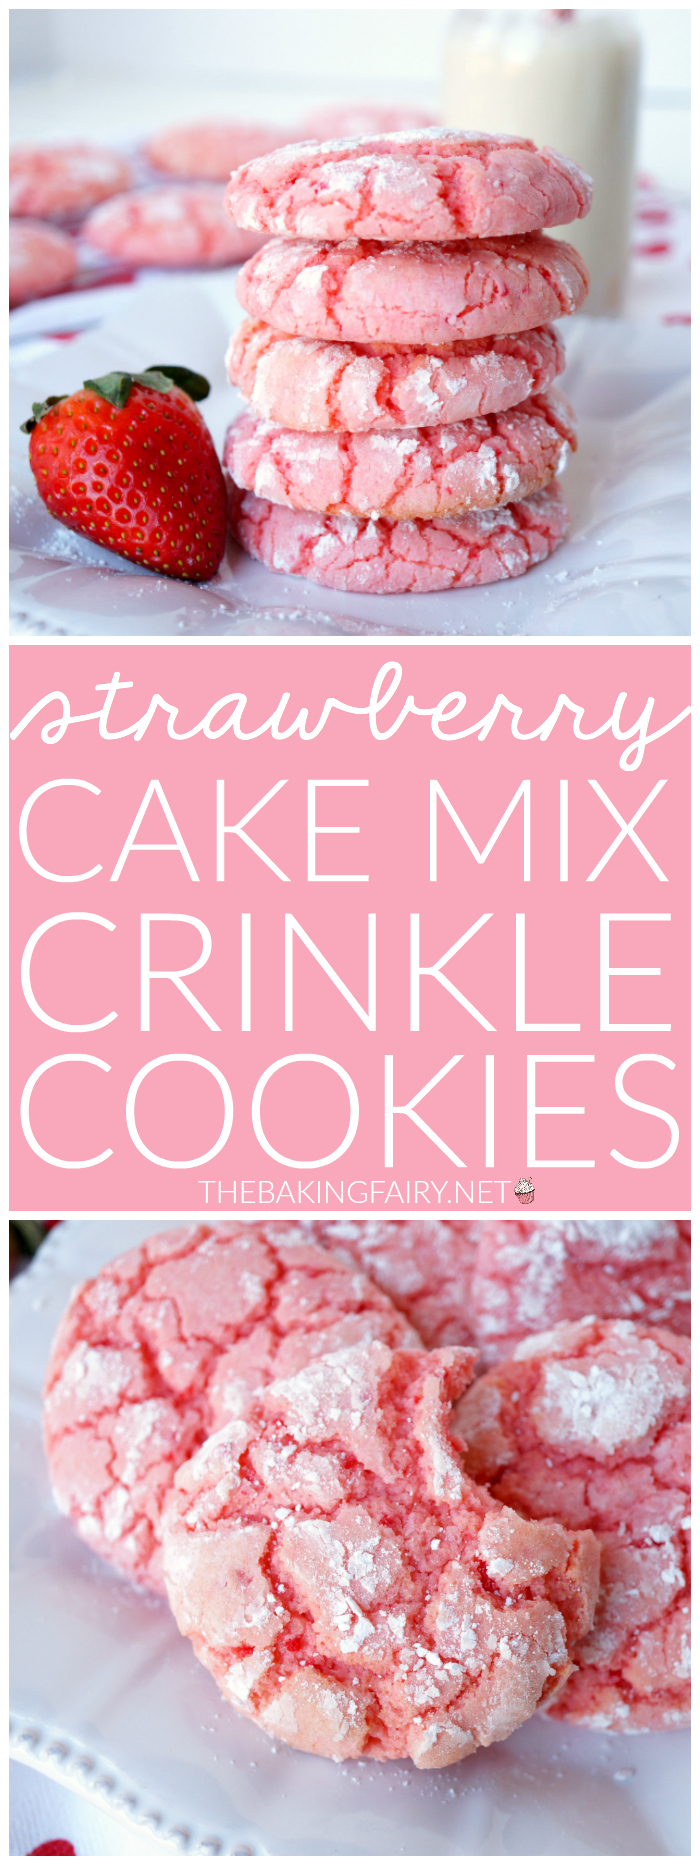 Strawberry Cake Mix Crinkle Cookies The Baking Fairy